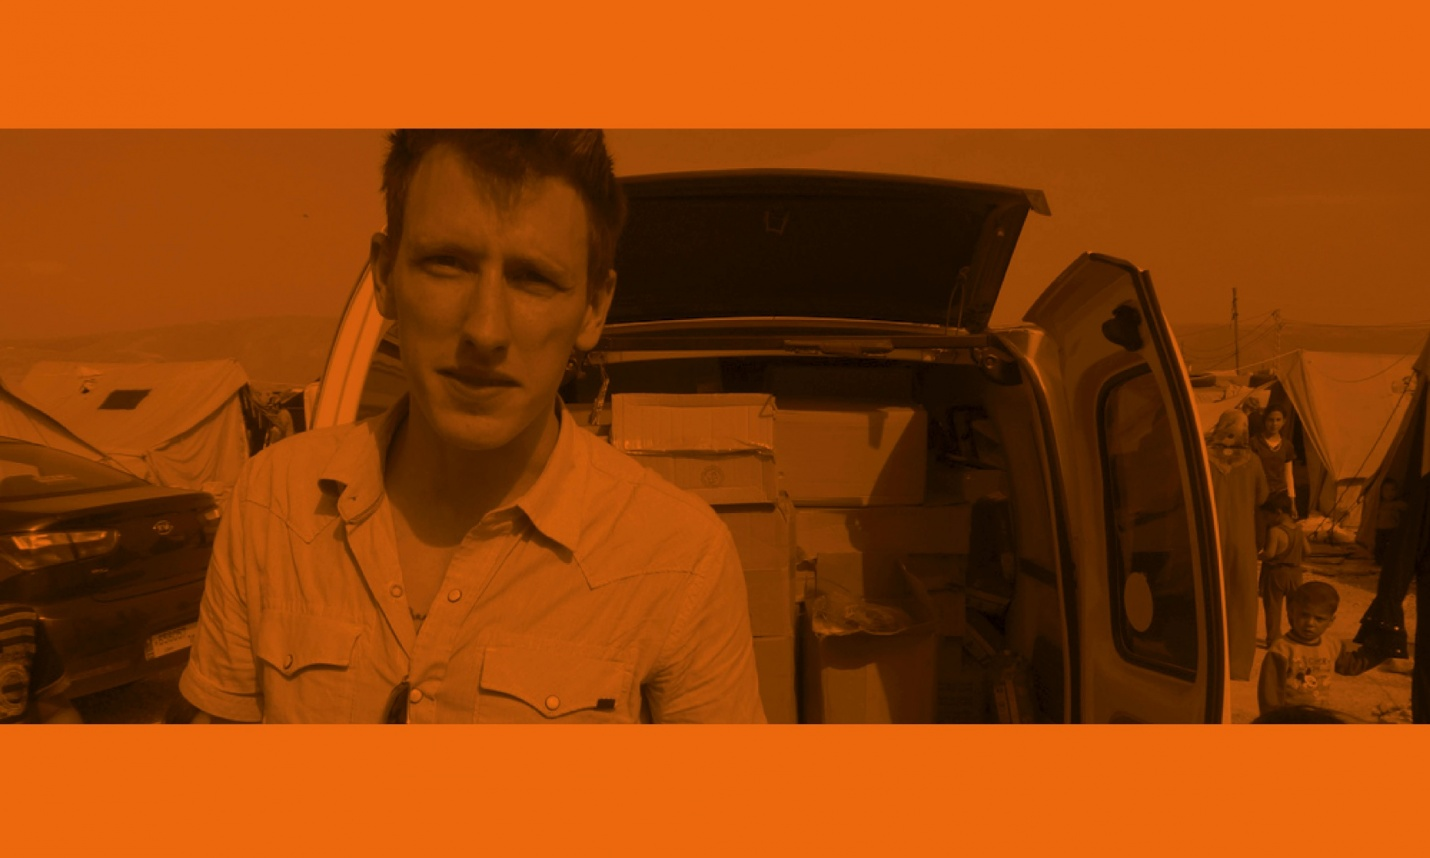 The race to save Peter Kassig